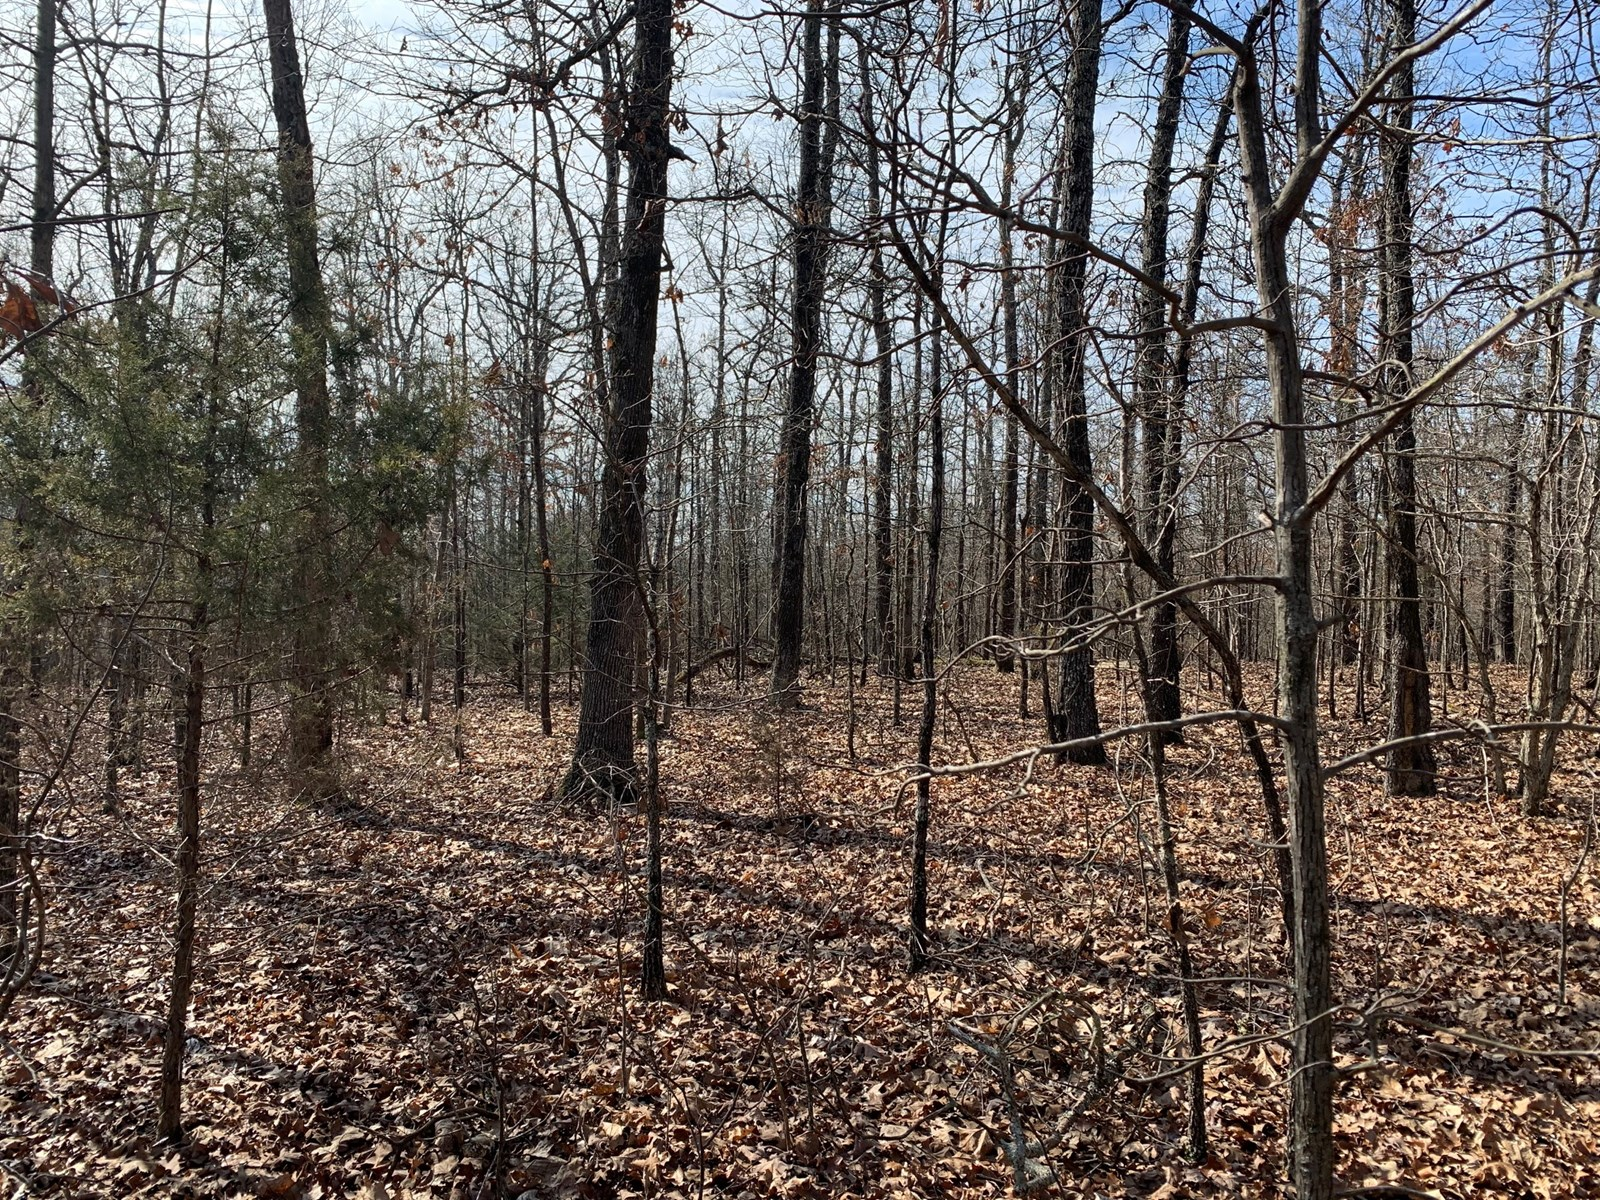 Land for sale, great deer and turkey hunting, north Arkansas